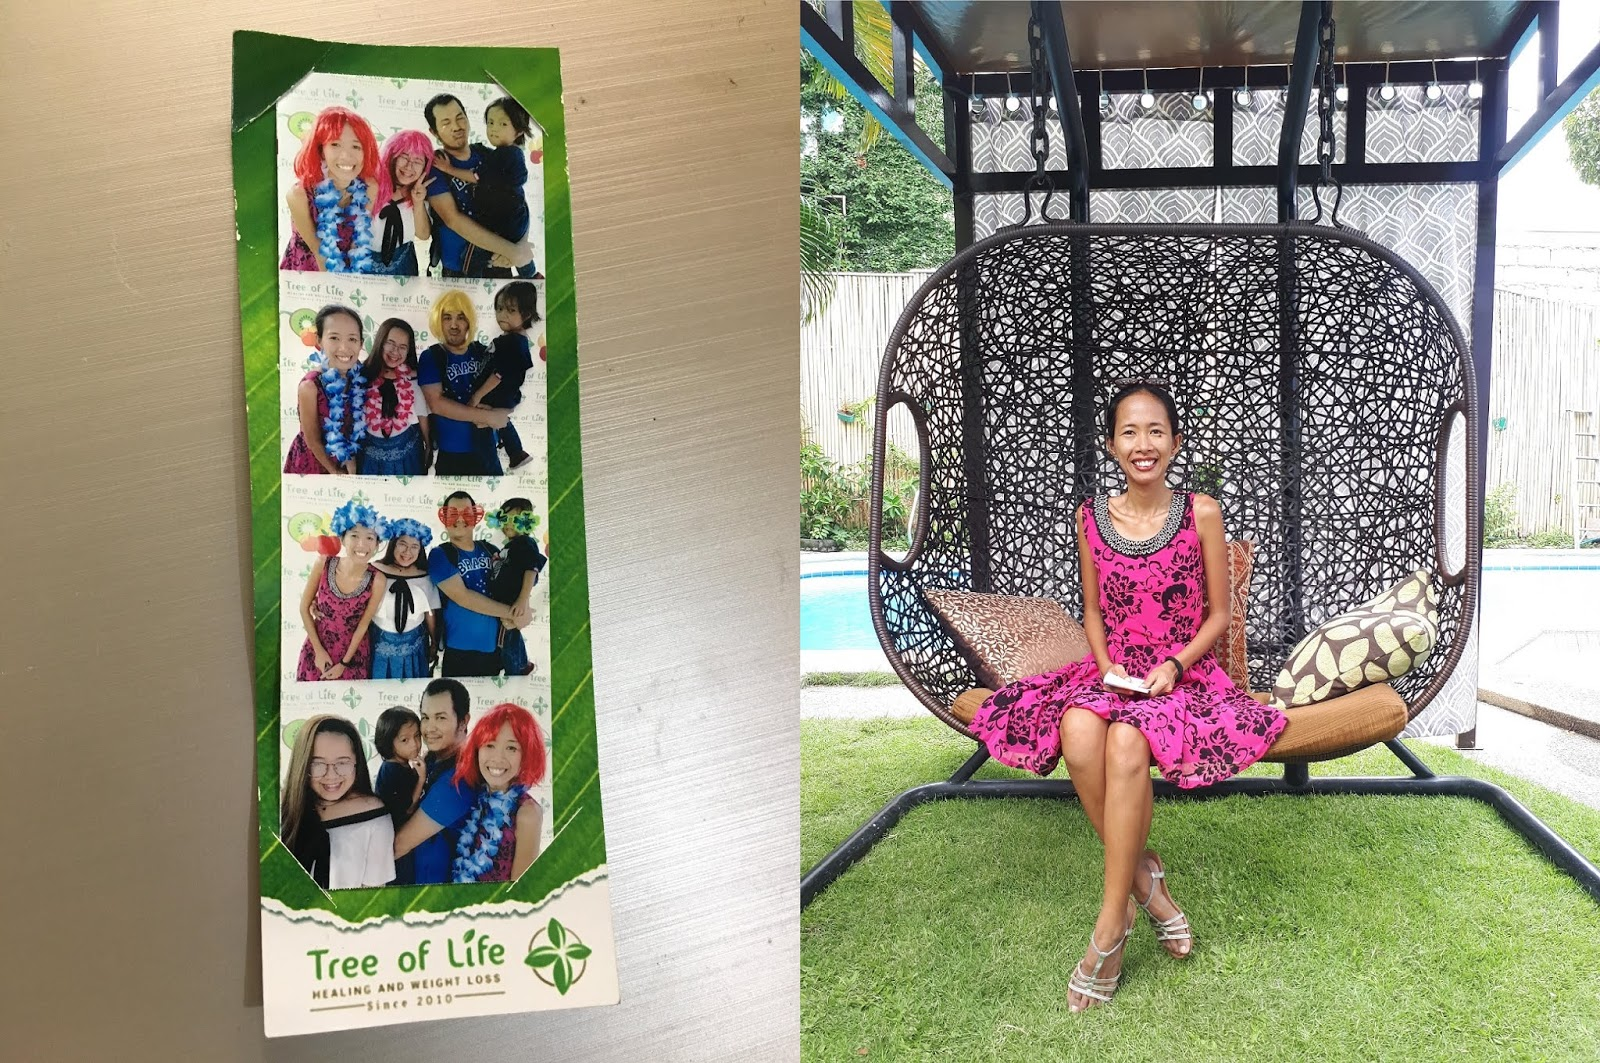 TREE OF LIFE WELLNESS CENTER PARANAQUE